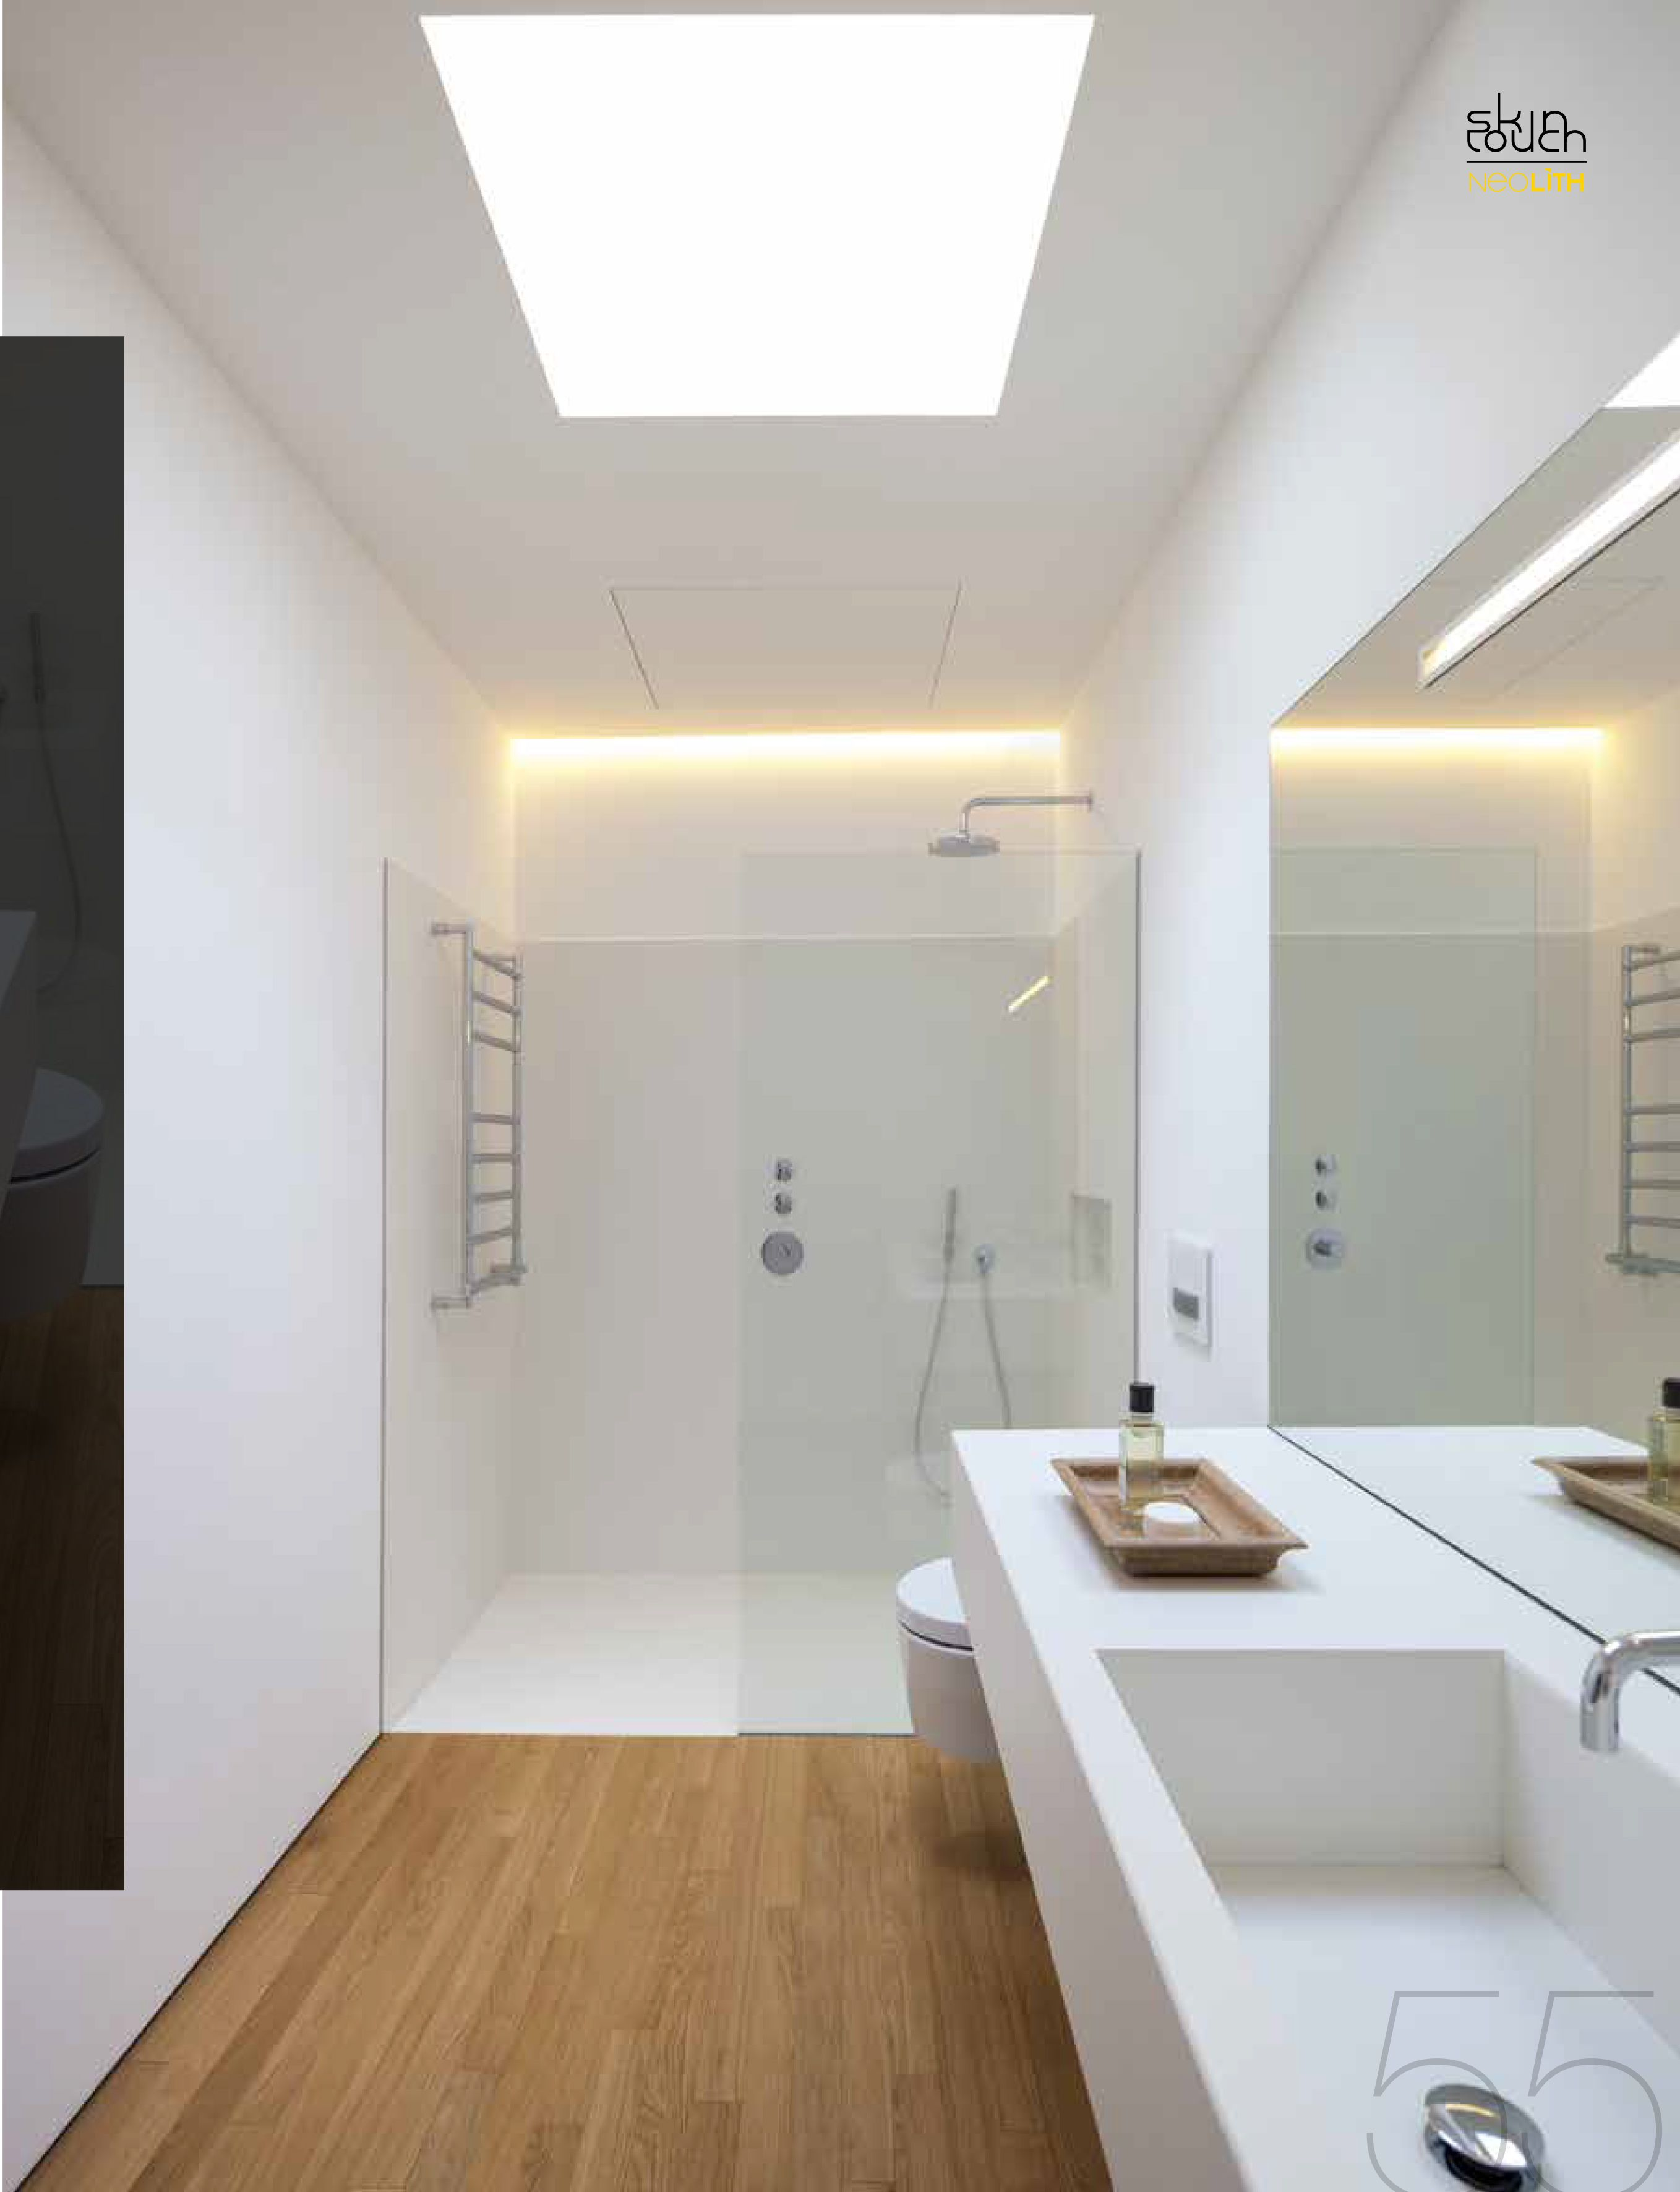 neolith arctic white wall floors sink and countertop kitchen